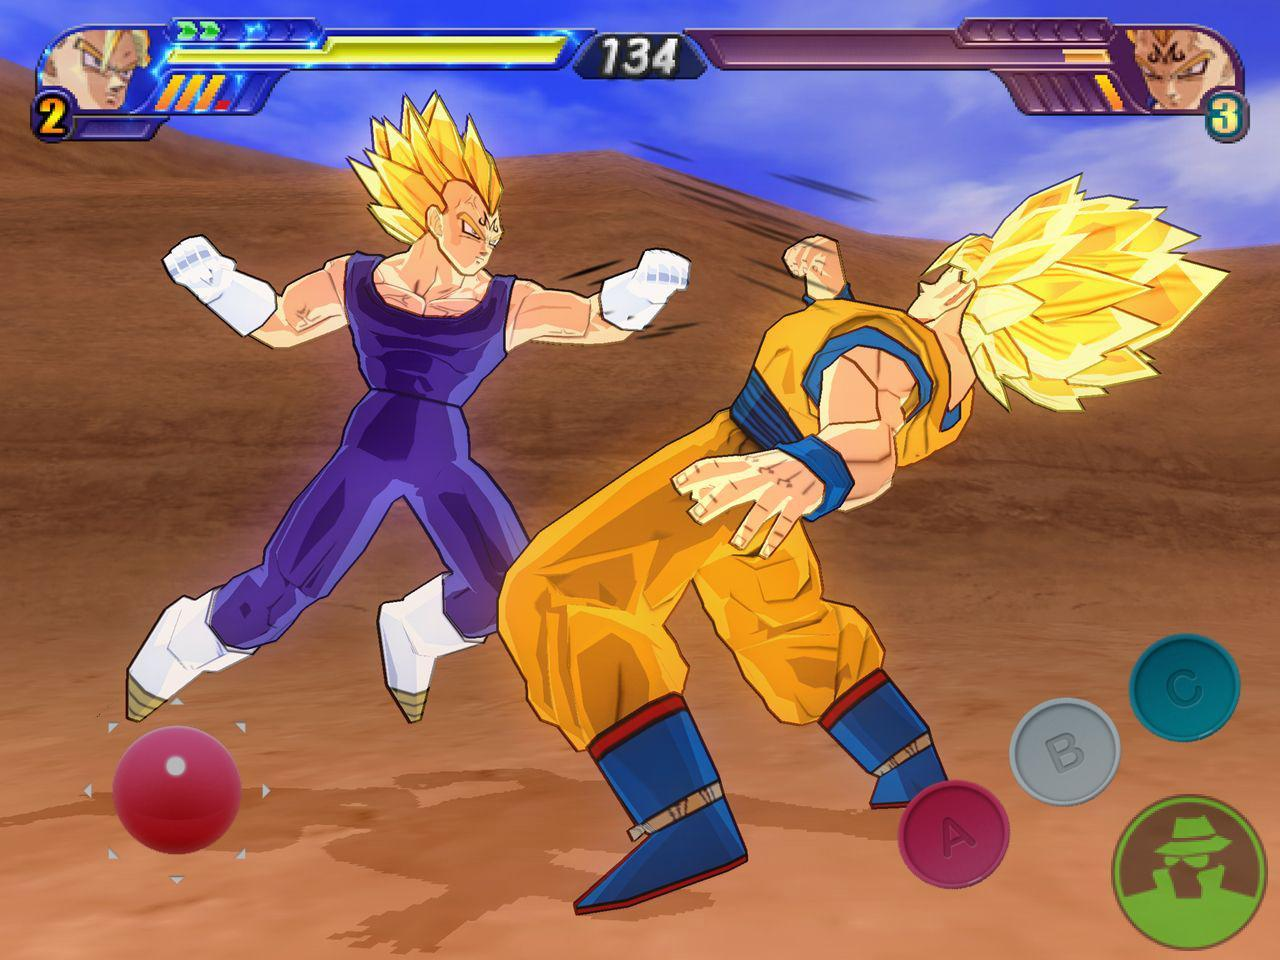 Dragon Ball Z Ppsspp Games For Android Free Download